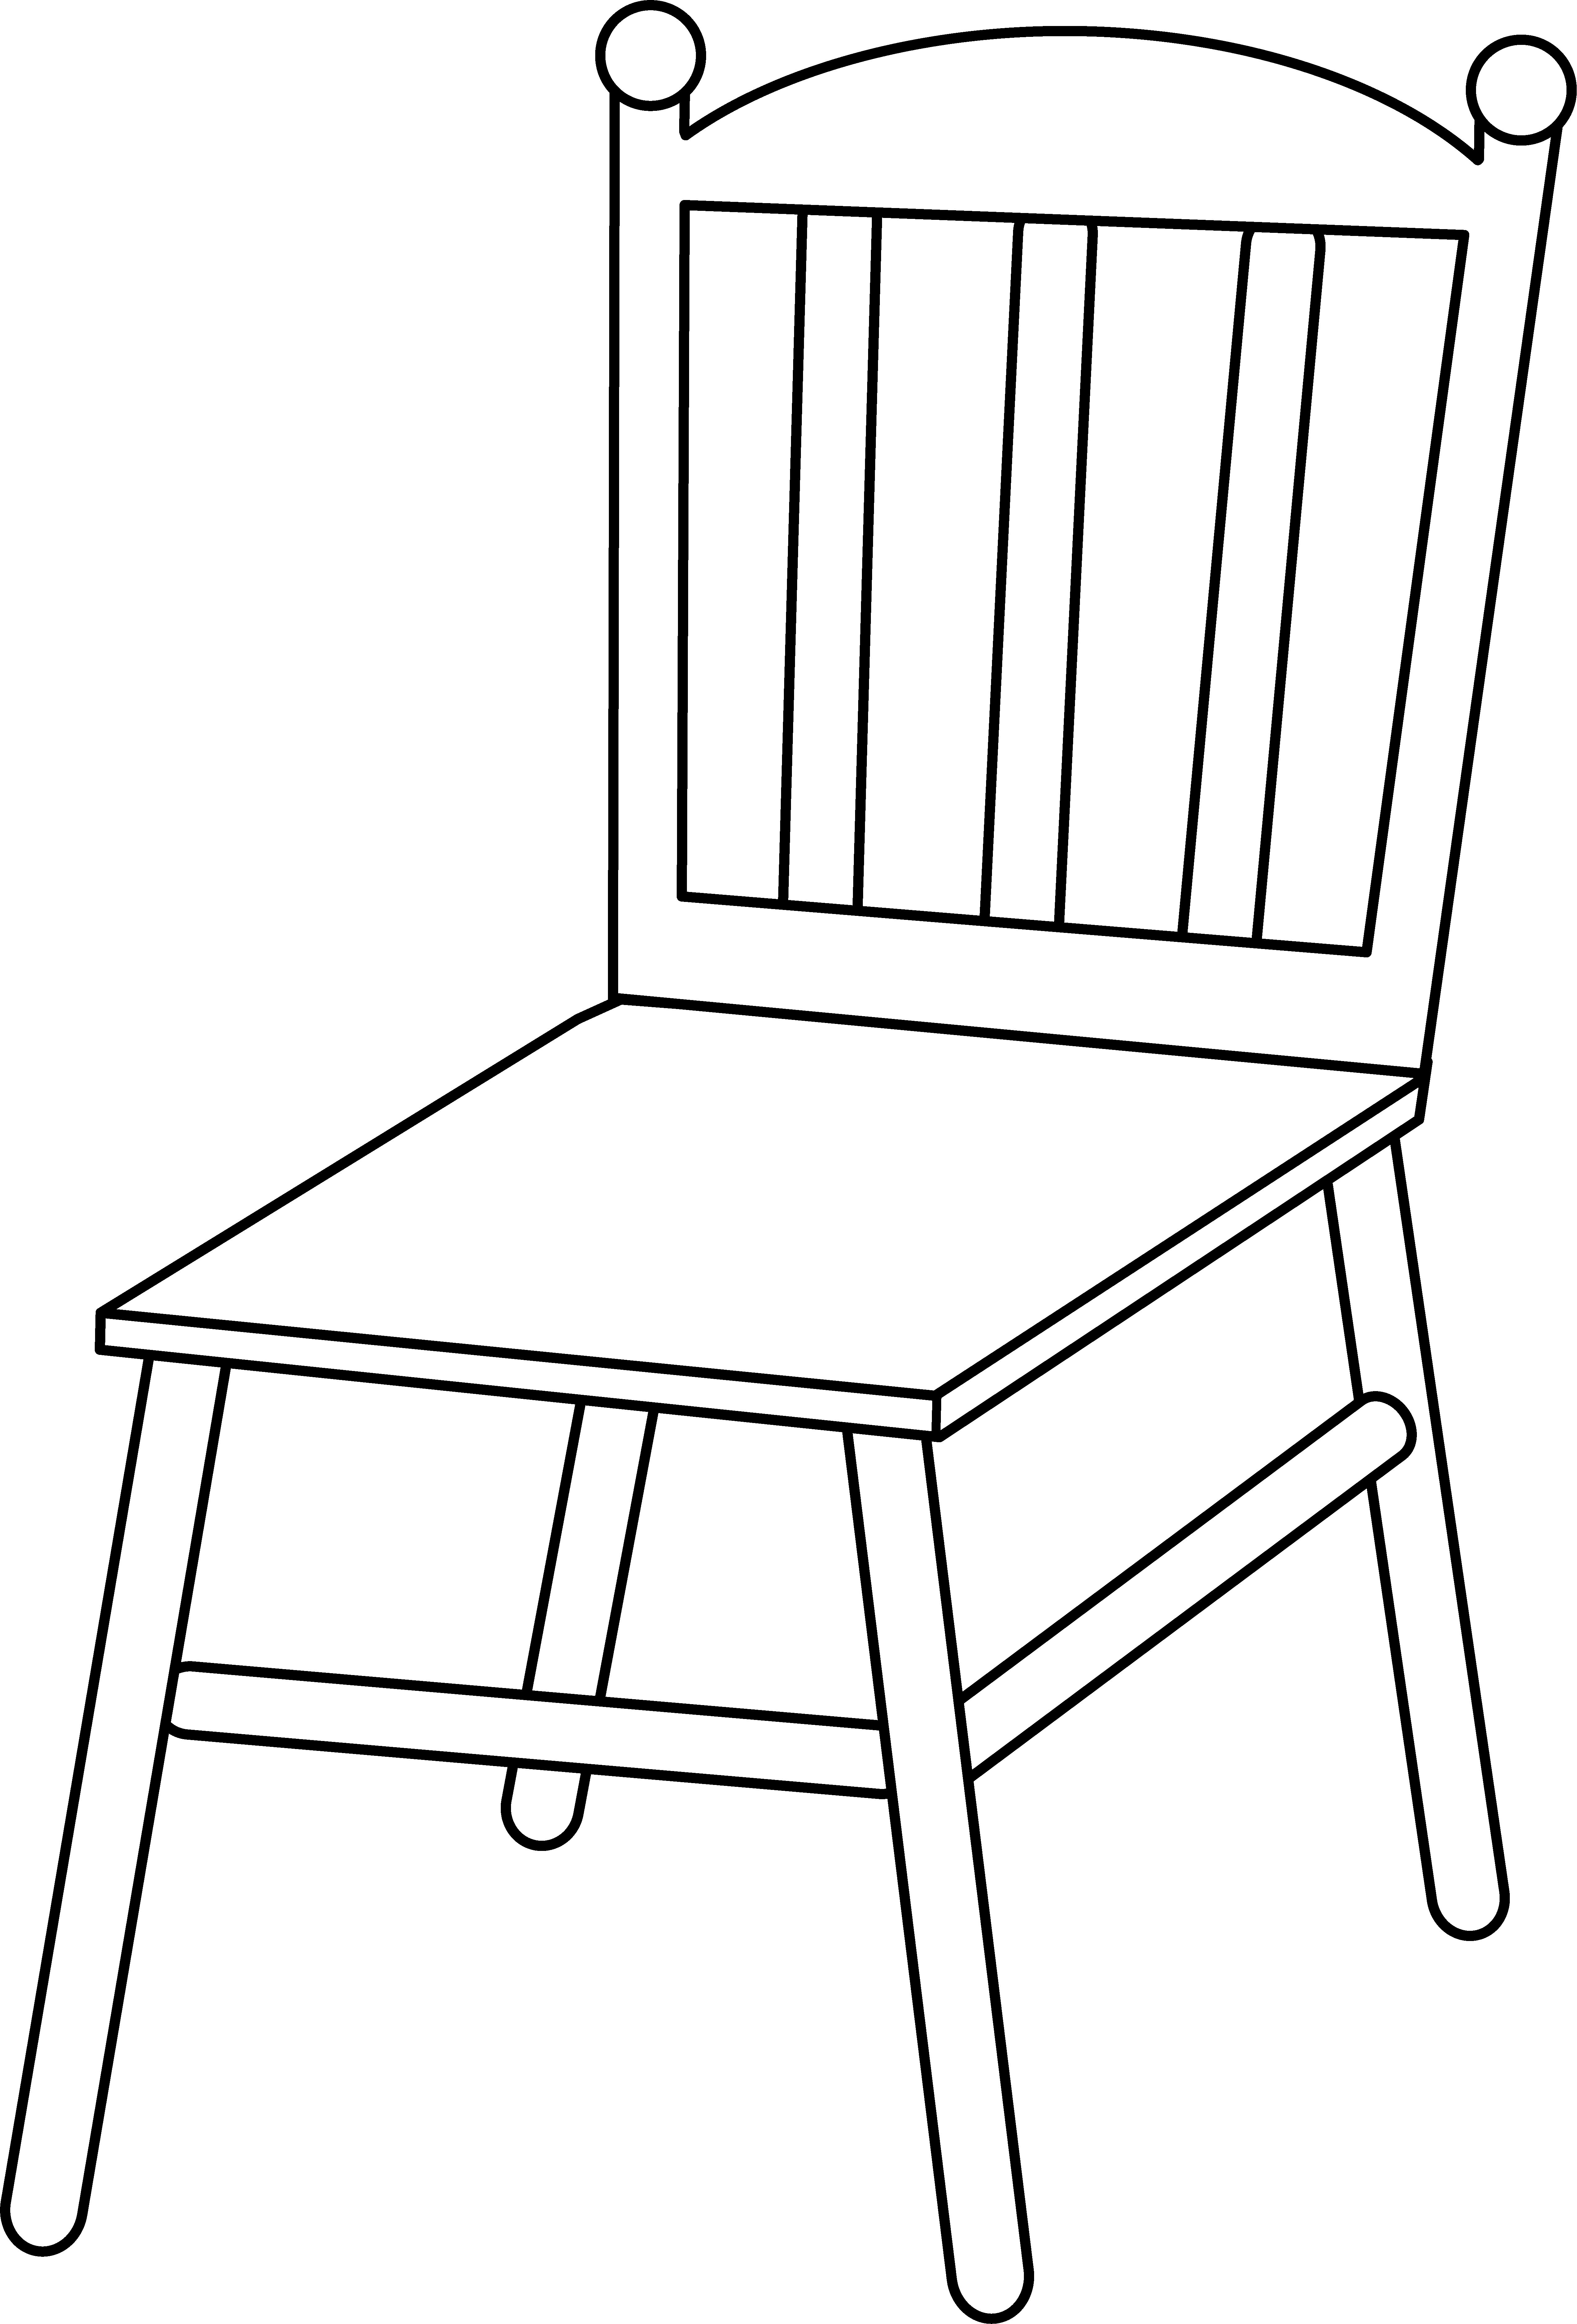 Drawing chairs easy. Chair black and white